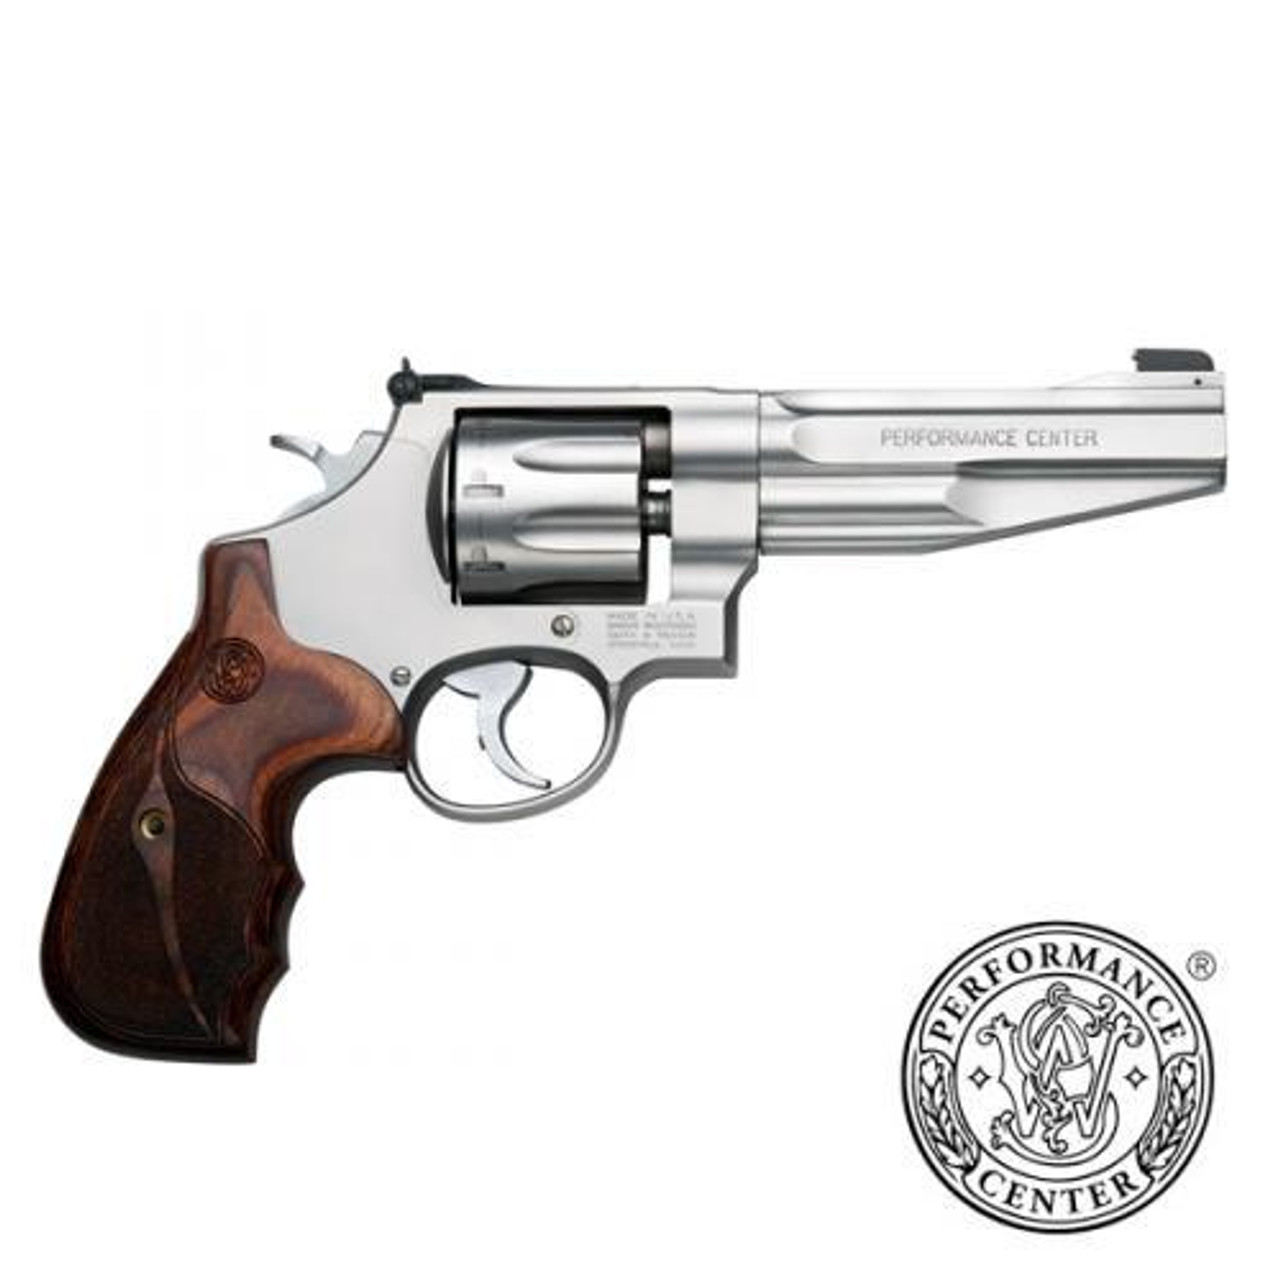 "Smith & Wesson 627 Performance Center Revolver, .357 MAG, 5"" Barrel, 8 Shot, Silver Matte Finish, Wood Grips, 170210"